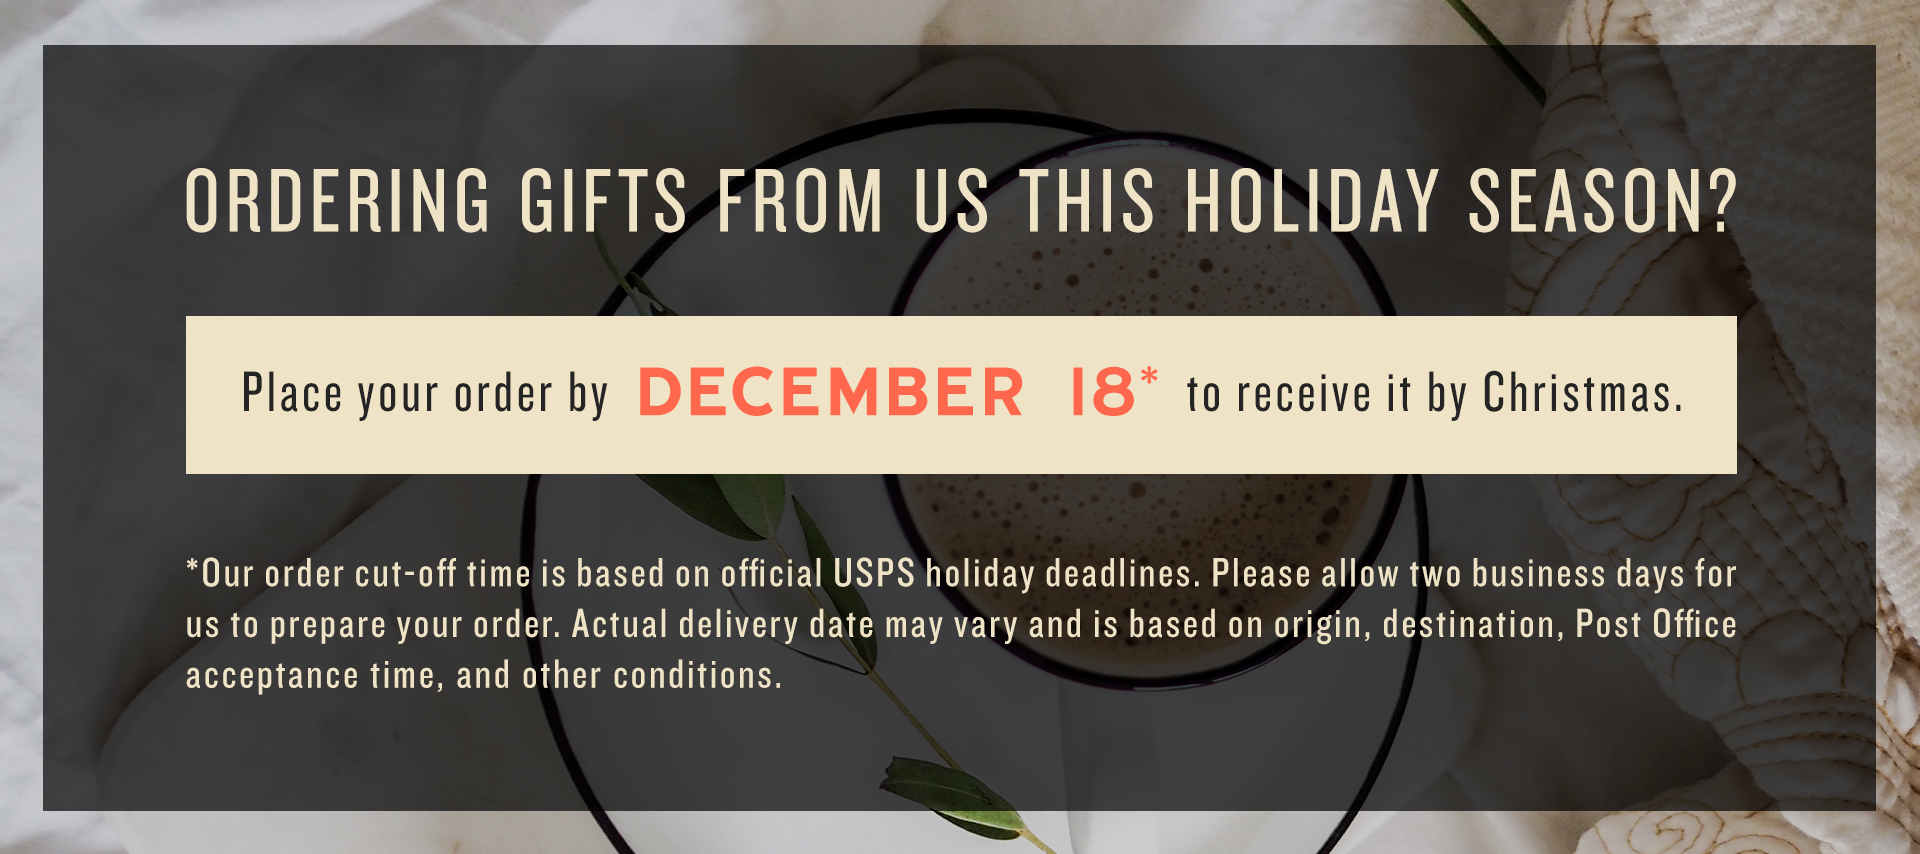 Order by December 18th to receive your order by Christmas!